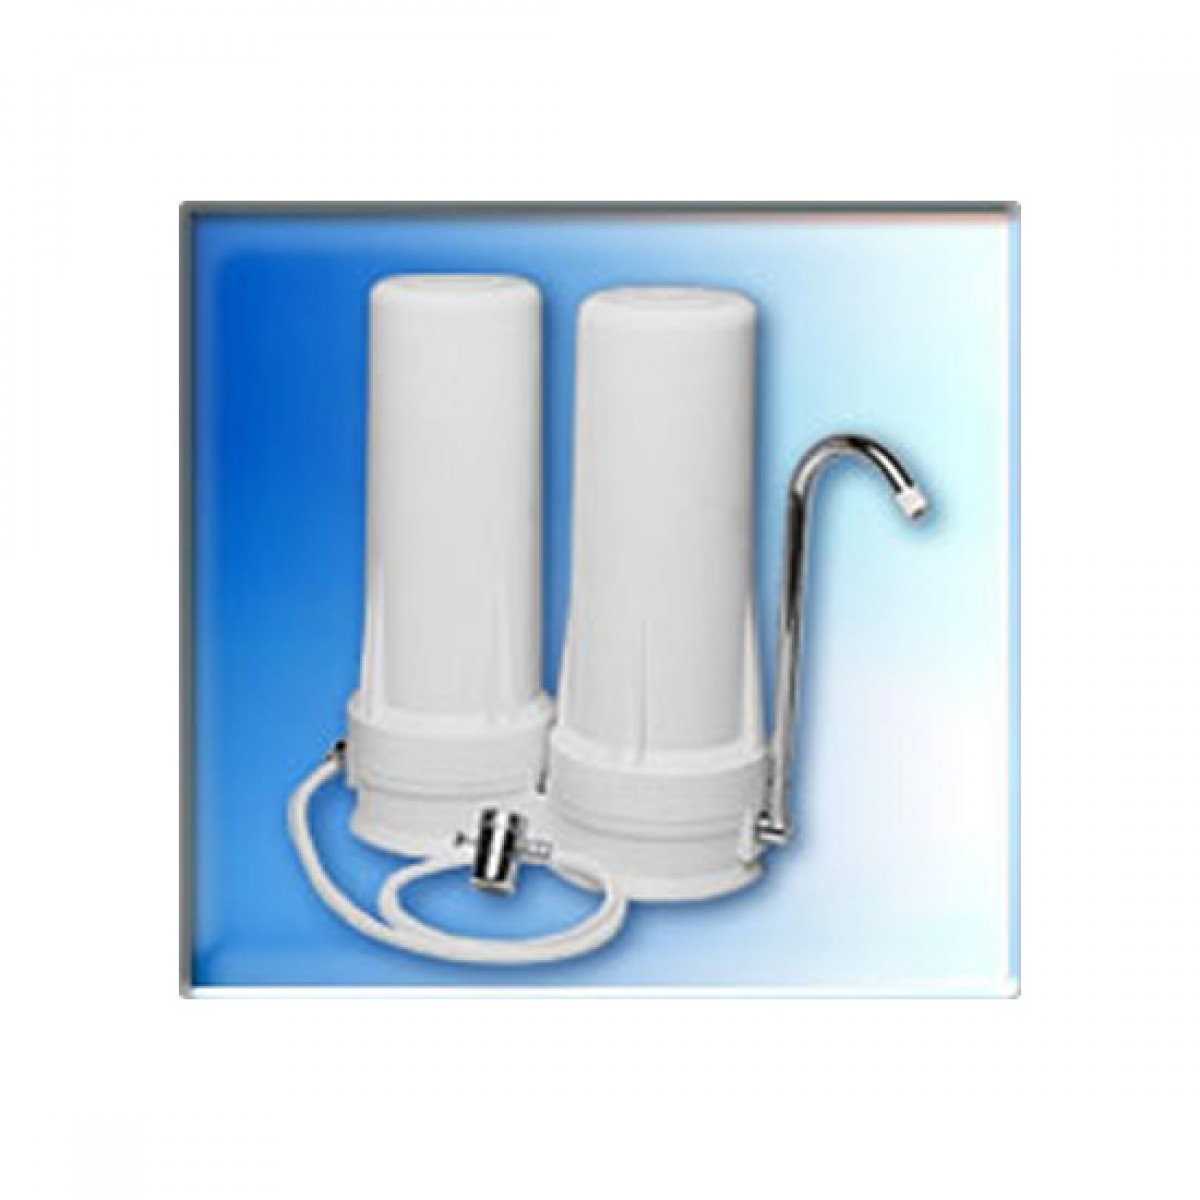 Home Water Filter System Qmp603 Two Stage Countertop Water Filter System